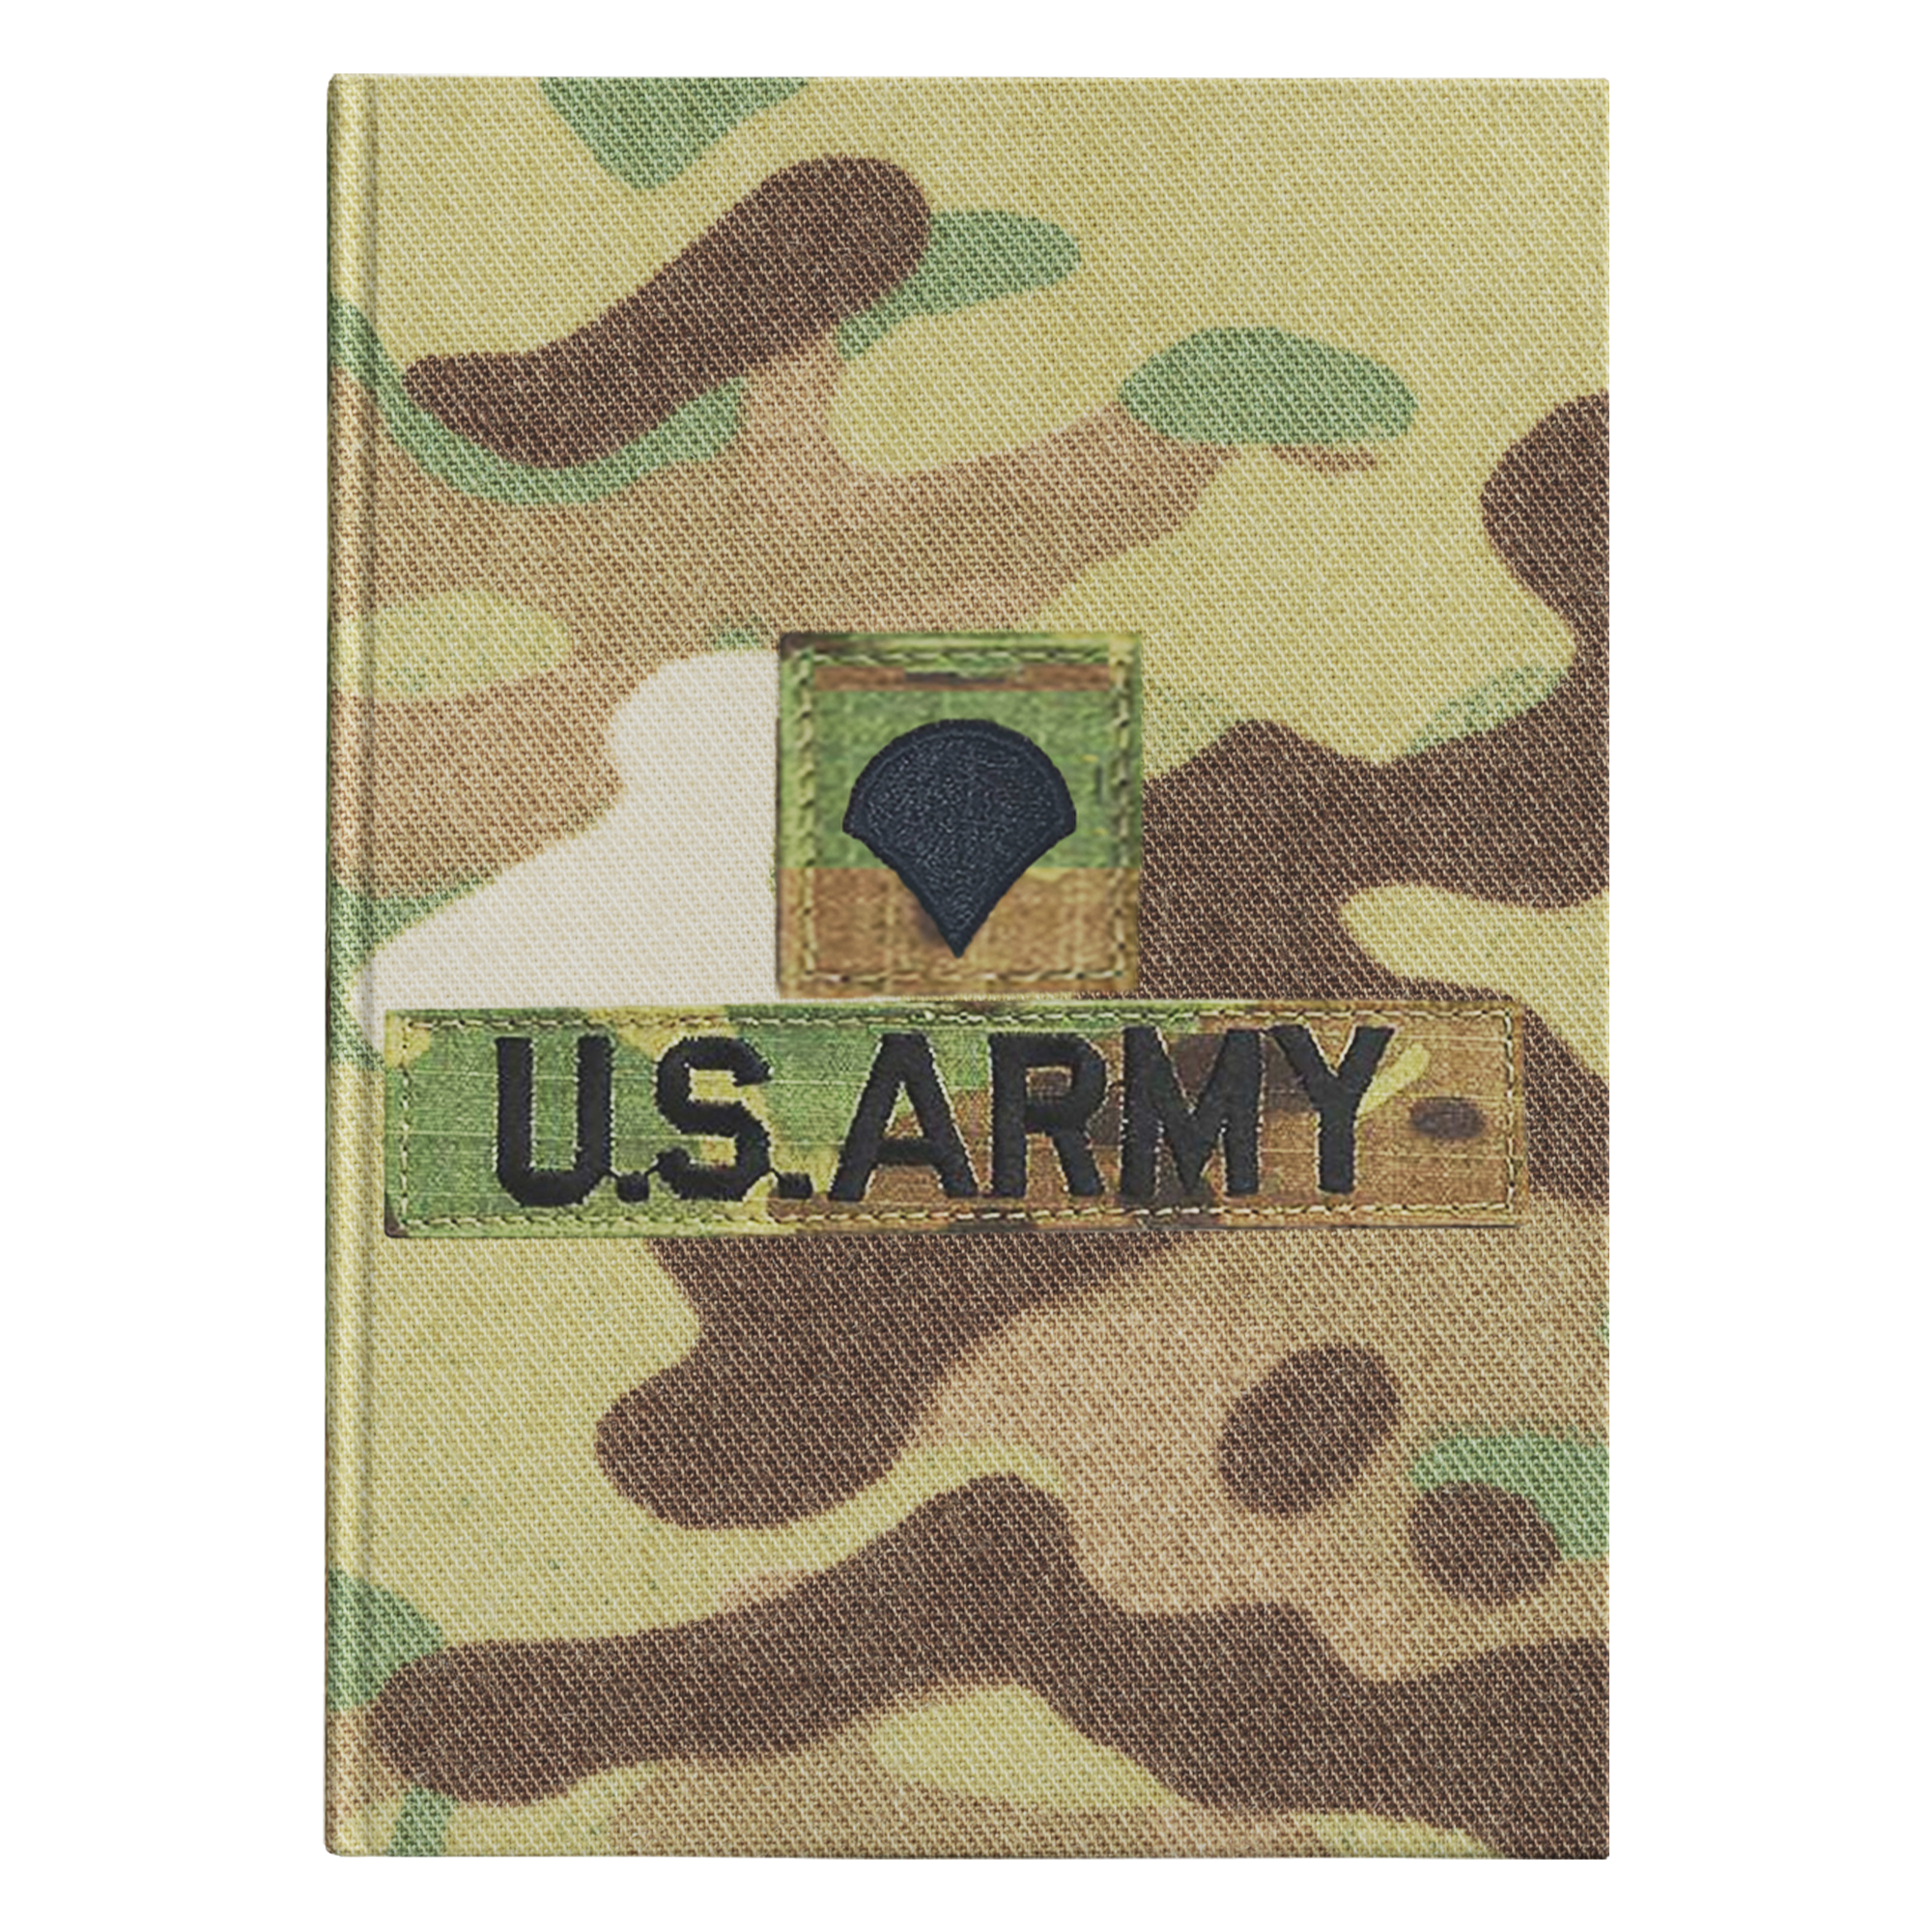 8TH Army Journal - SPC